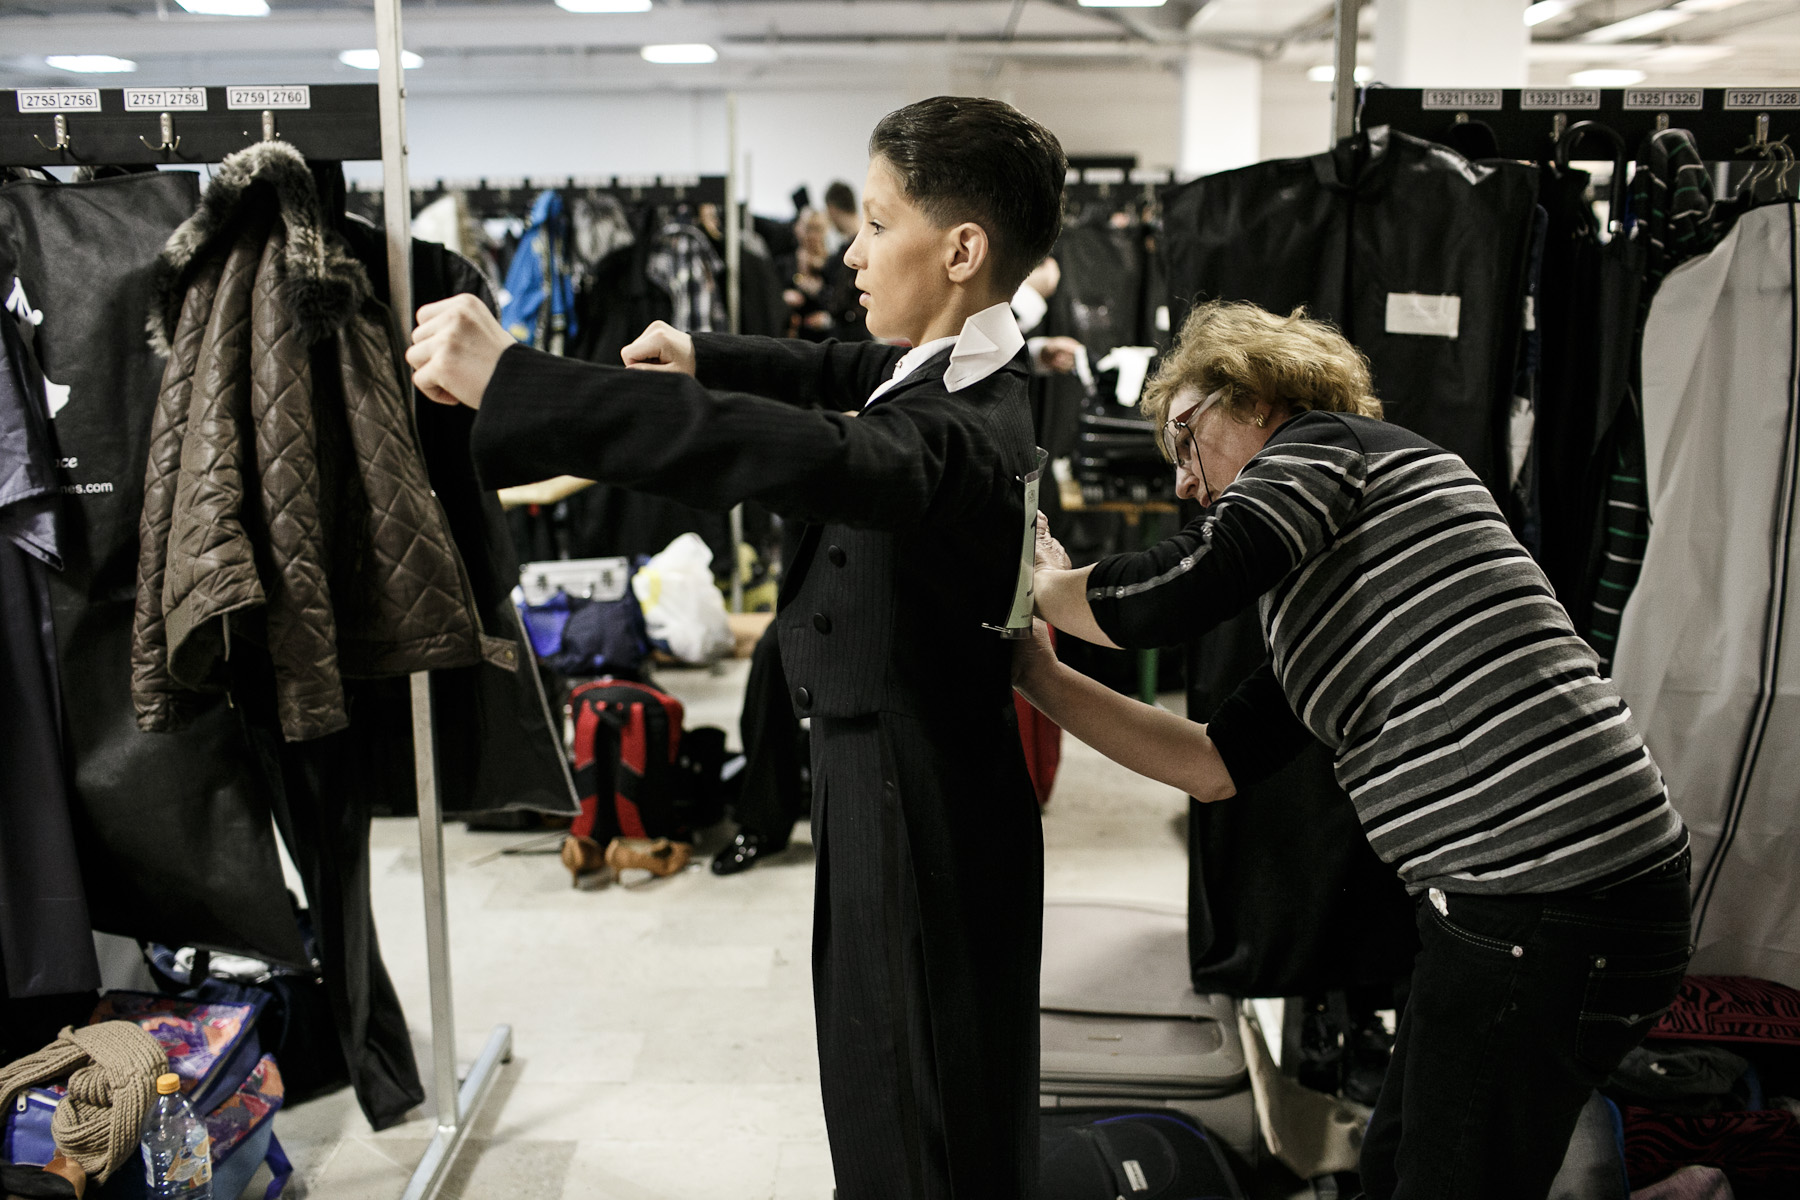 A young dancer has his starting number fitted in the dressing room of the 2013 Ljubljana Open dancing competition in Ljubljana, Slovenia.